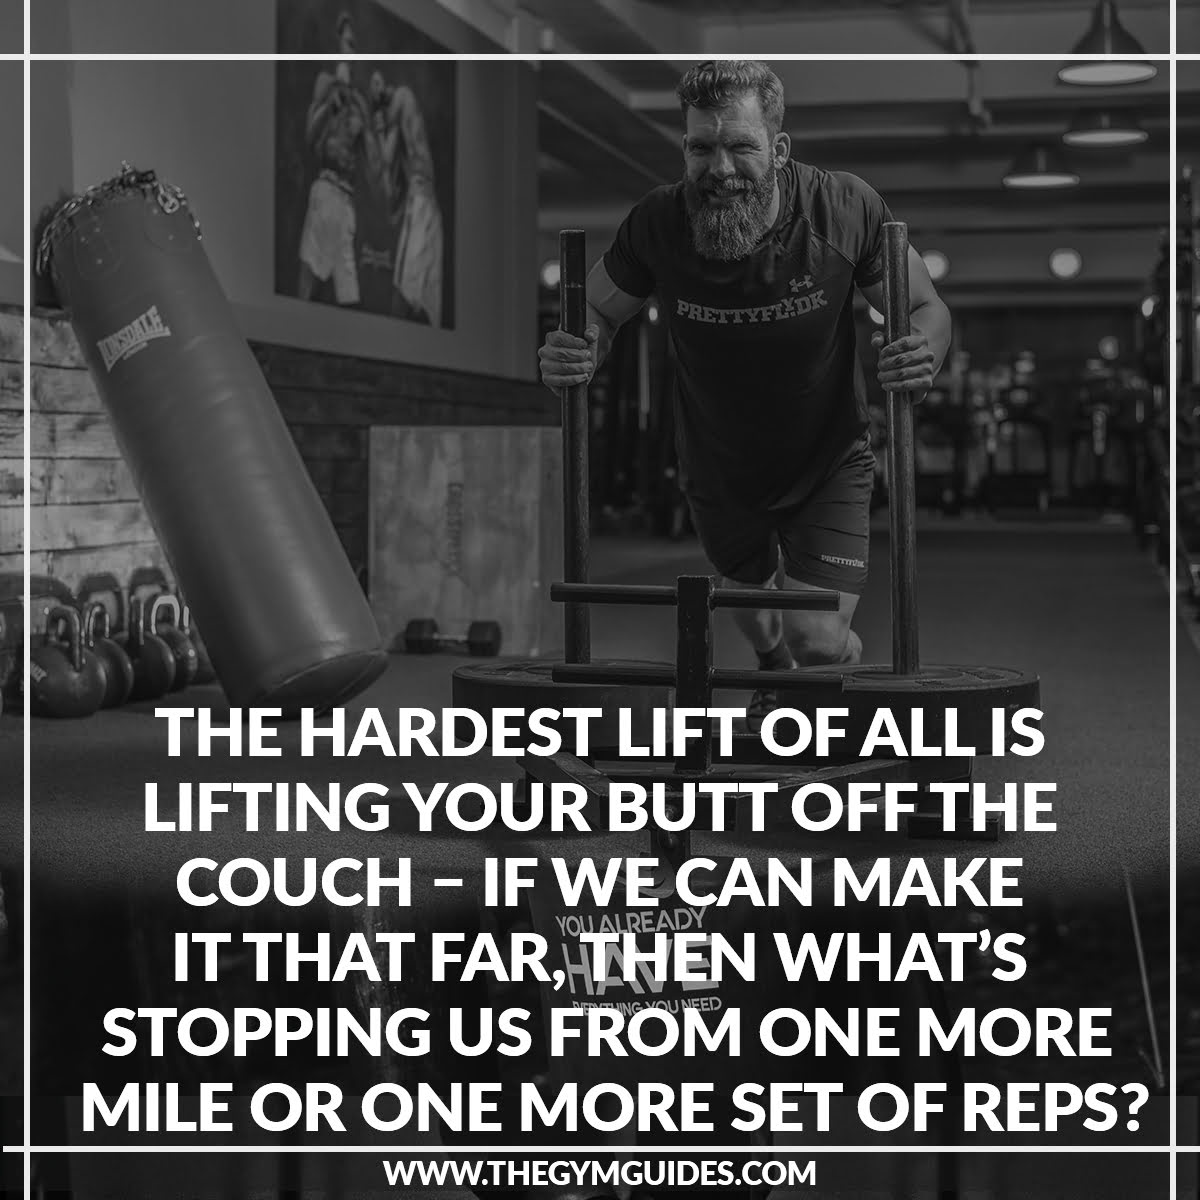 The HARDEST Lift of All is Lifting your BUTT Off the Couch – if we can make it that far, then what's stopping us from one more mile or one more set of reps